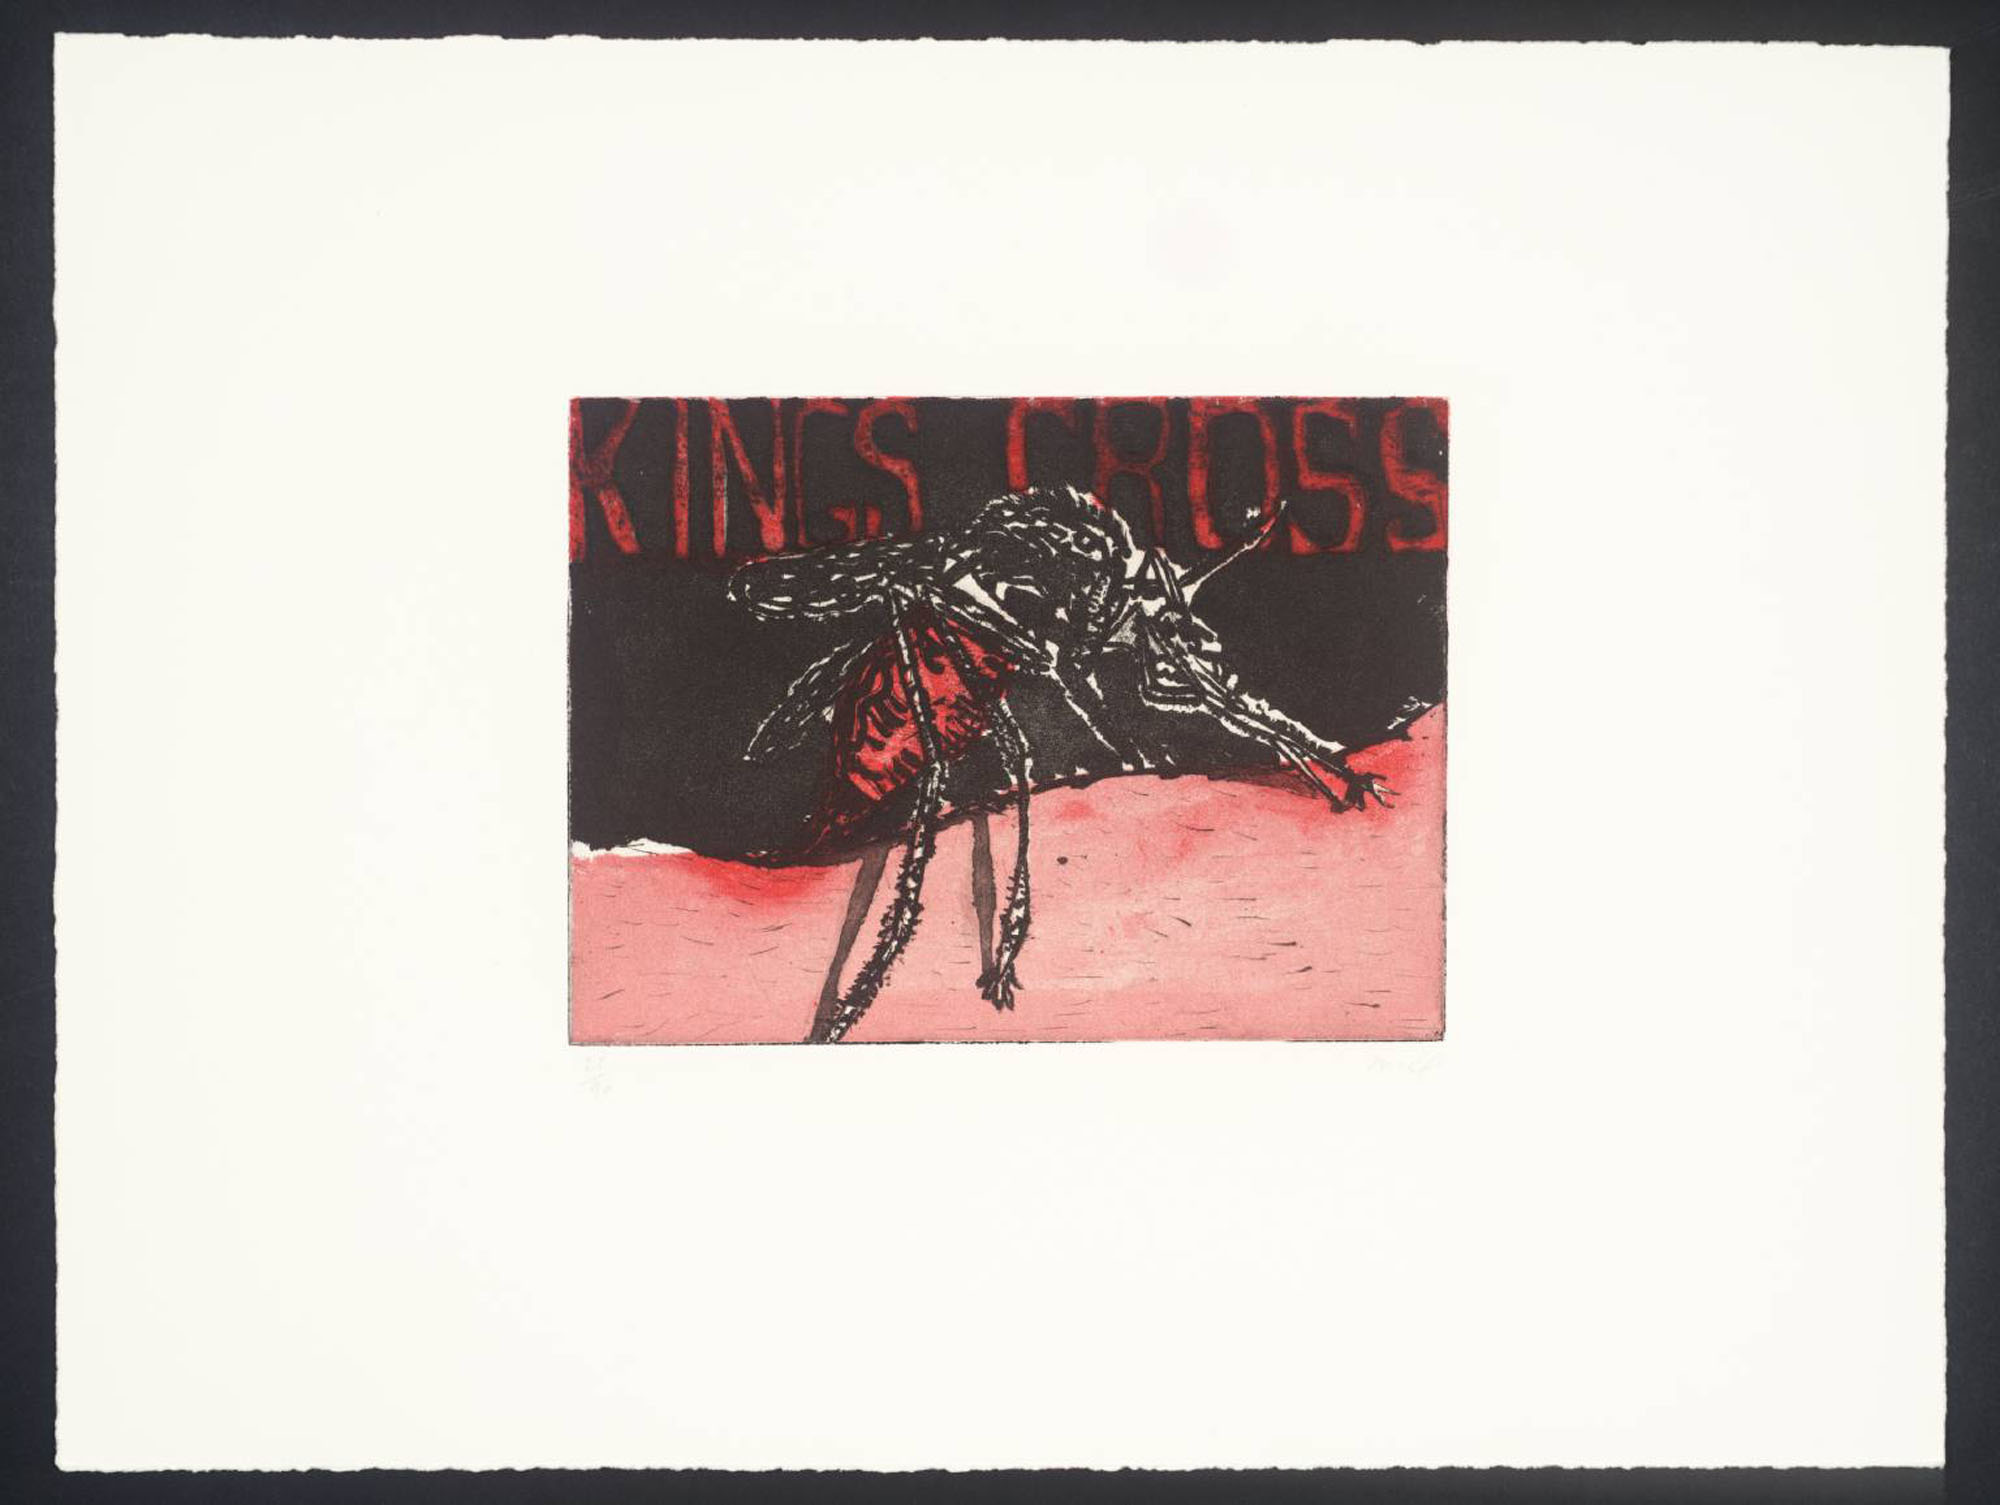 image of Peter Doig's King's Cross Mosquito